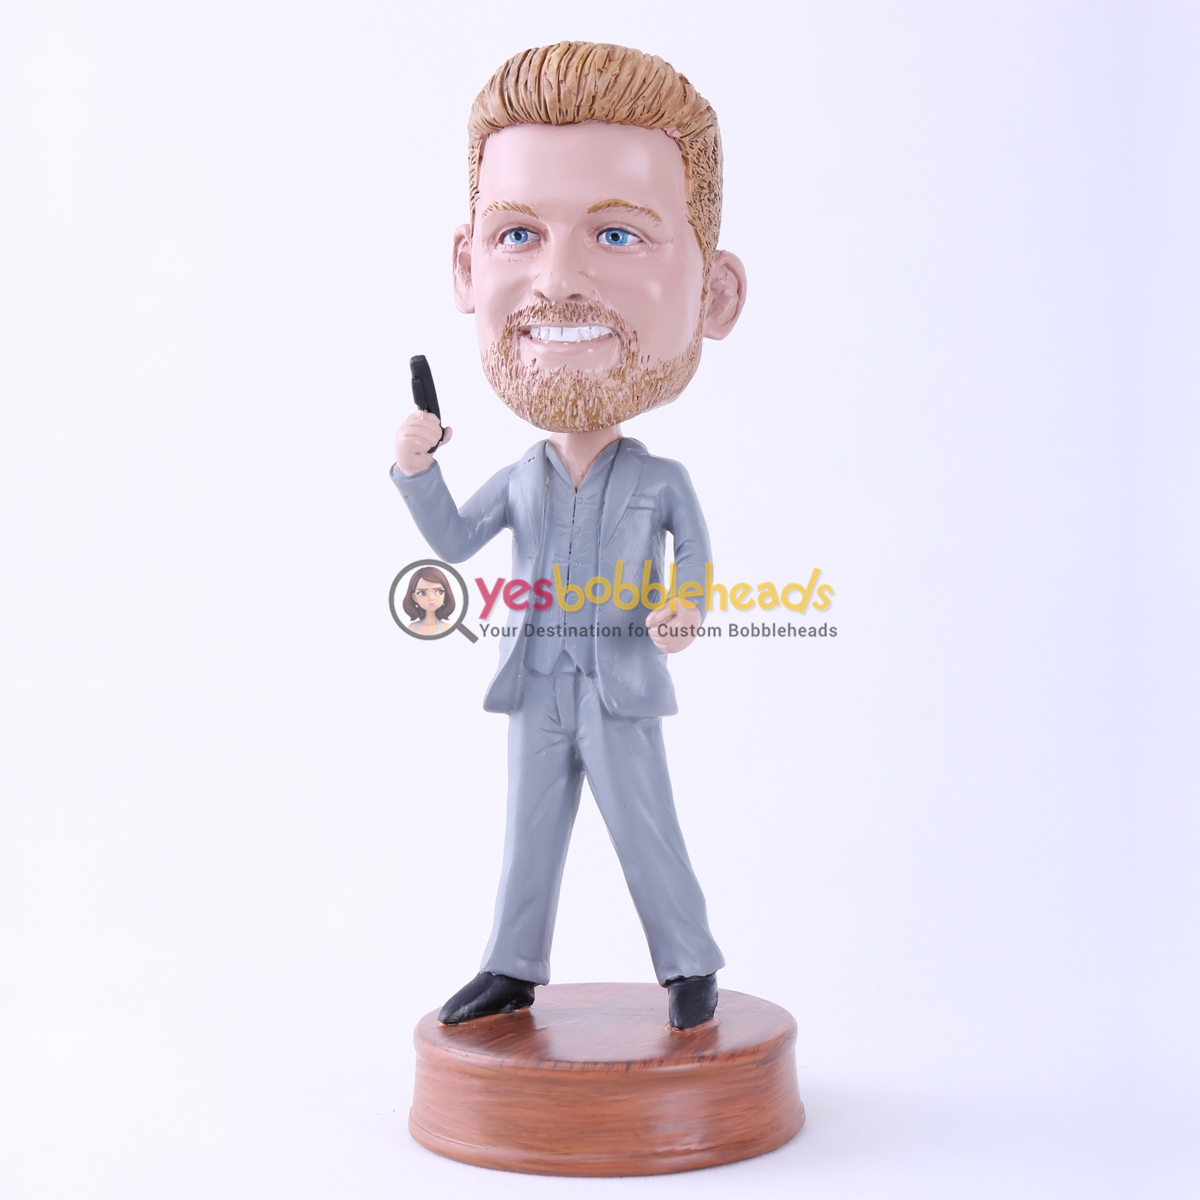 Picture of Custom Bobblehead Doll: James Bond Cosplay